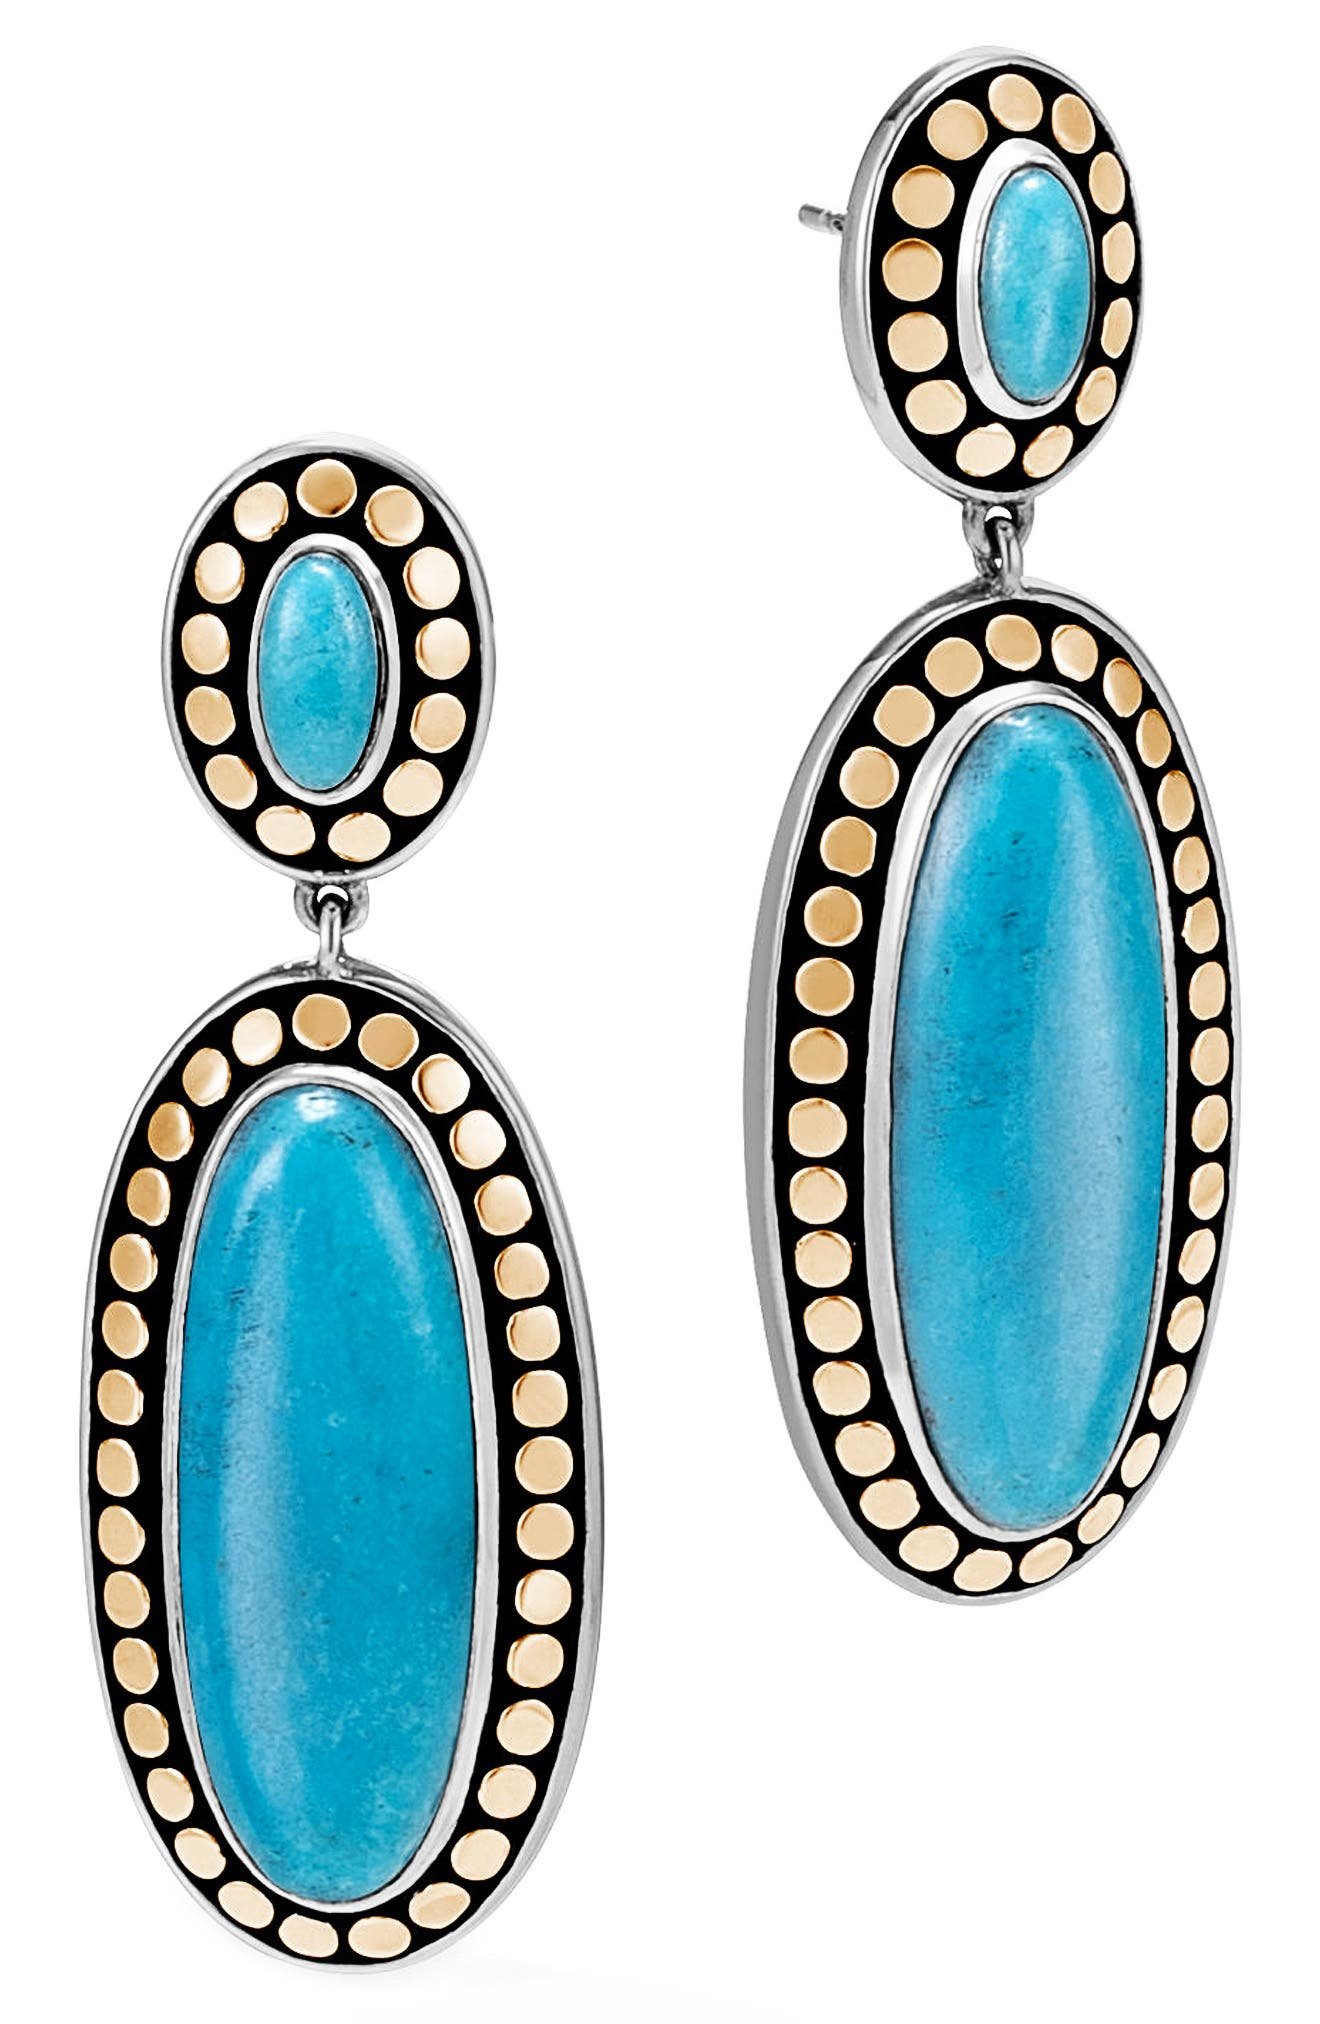 Dot Oval Drop Earrings,                             Main thumbnail 1, color,                             Silver/ Gold/ Turquoise